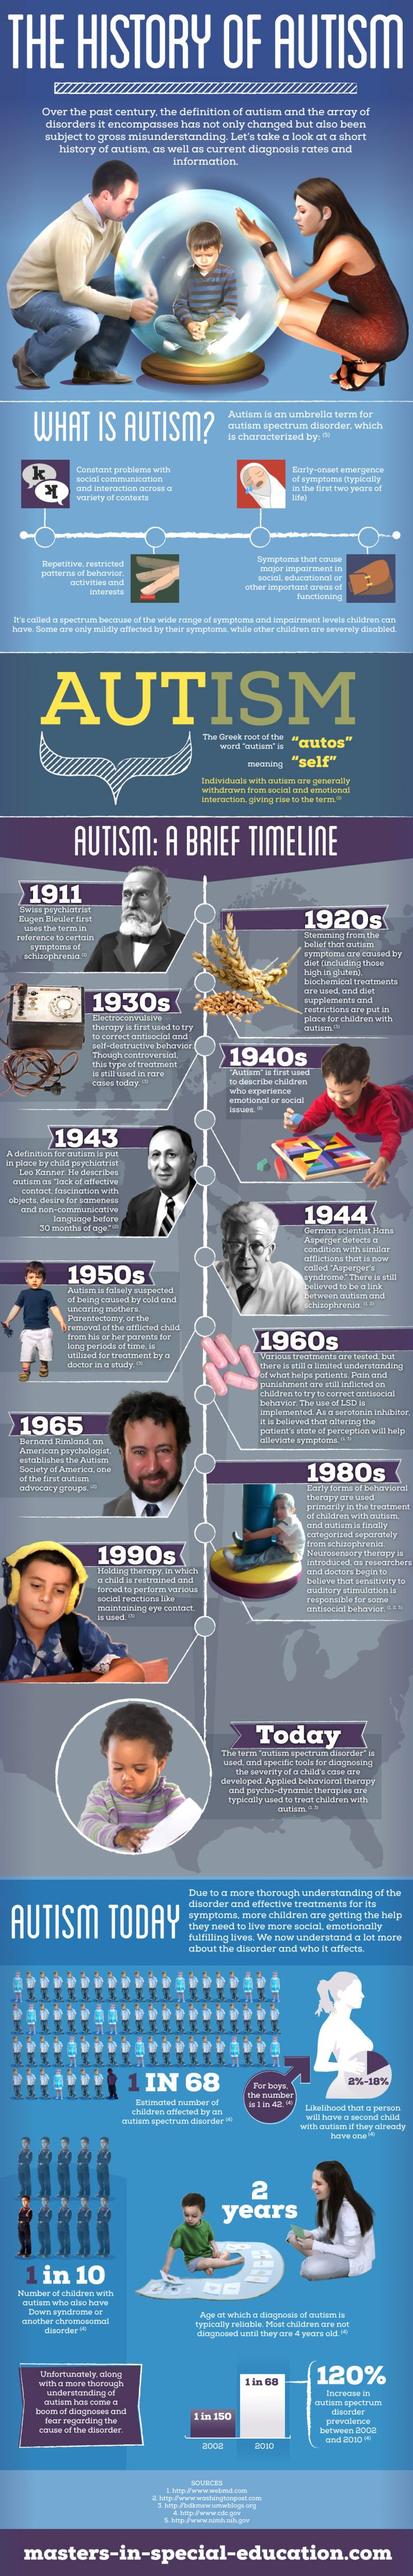 The History of Autism Infographic. I think the sudden spike in autism is because of nutrasweet.